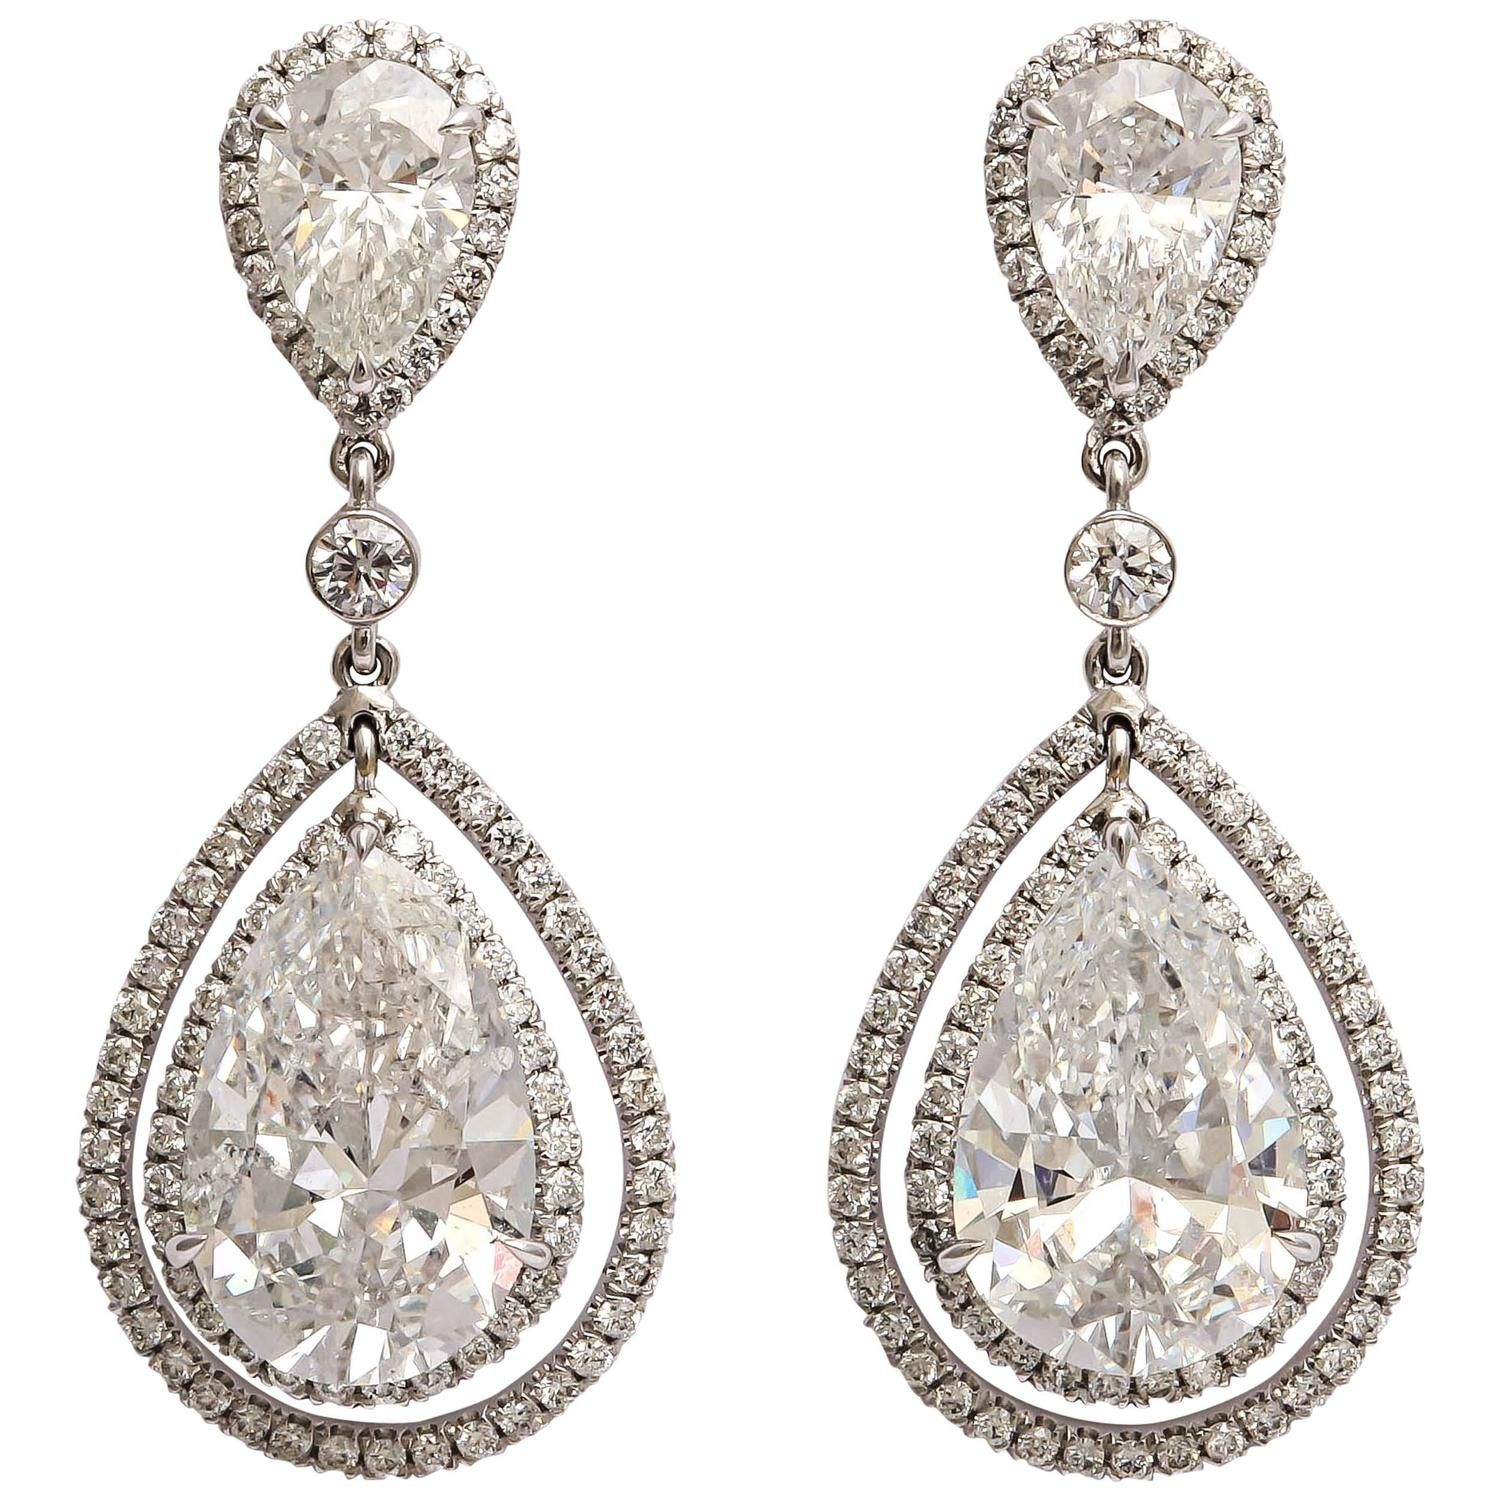 Regal Pear Shaped Diamond Dangling Earrings